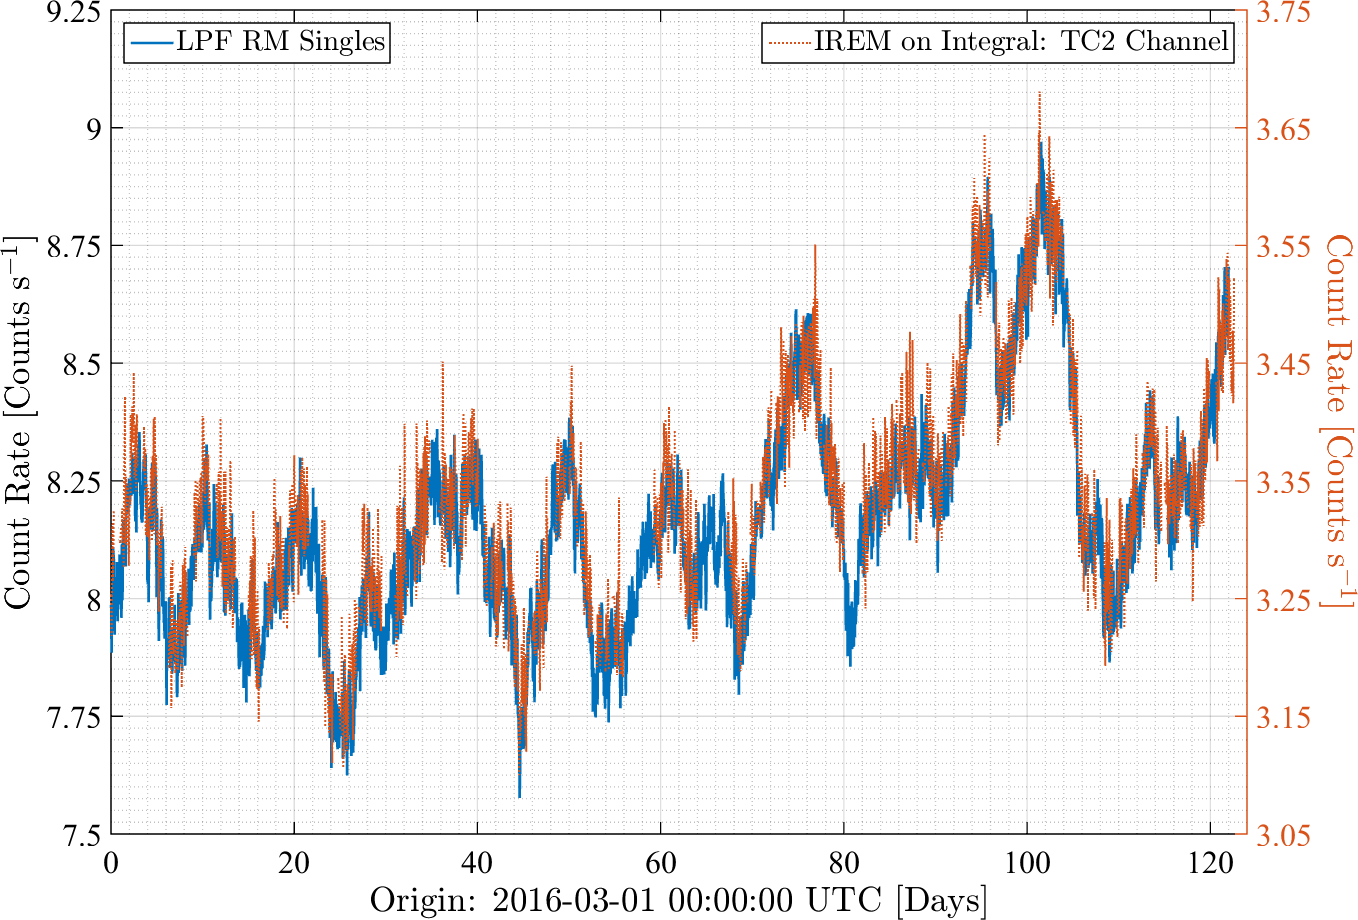 The count rate measured over a four month period by the Pathfinder monitor (left axis) and the IREM TC2 channel (right axis).